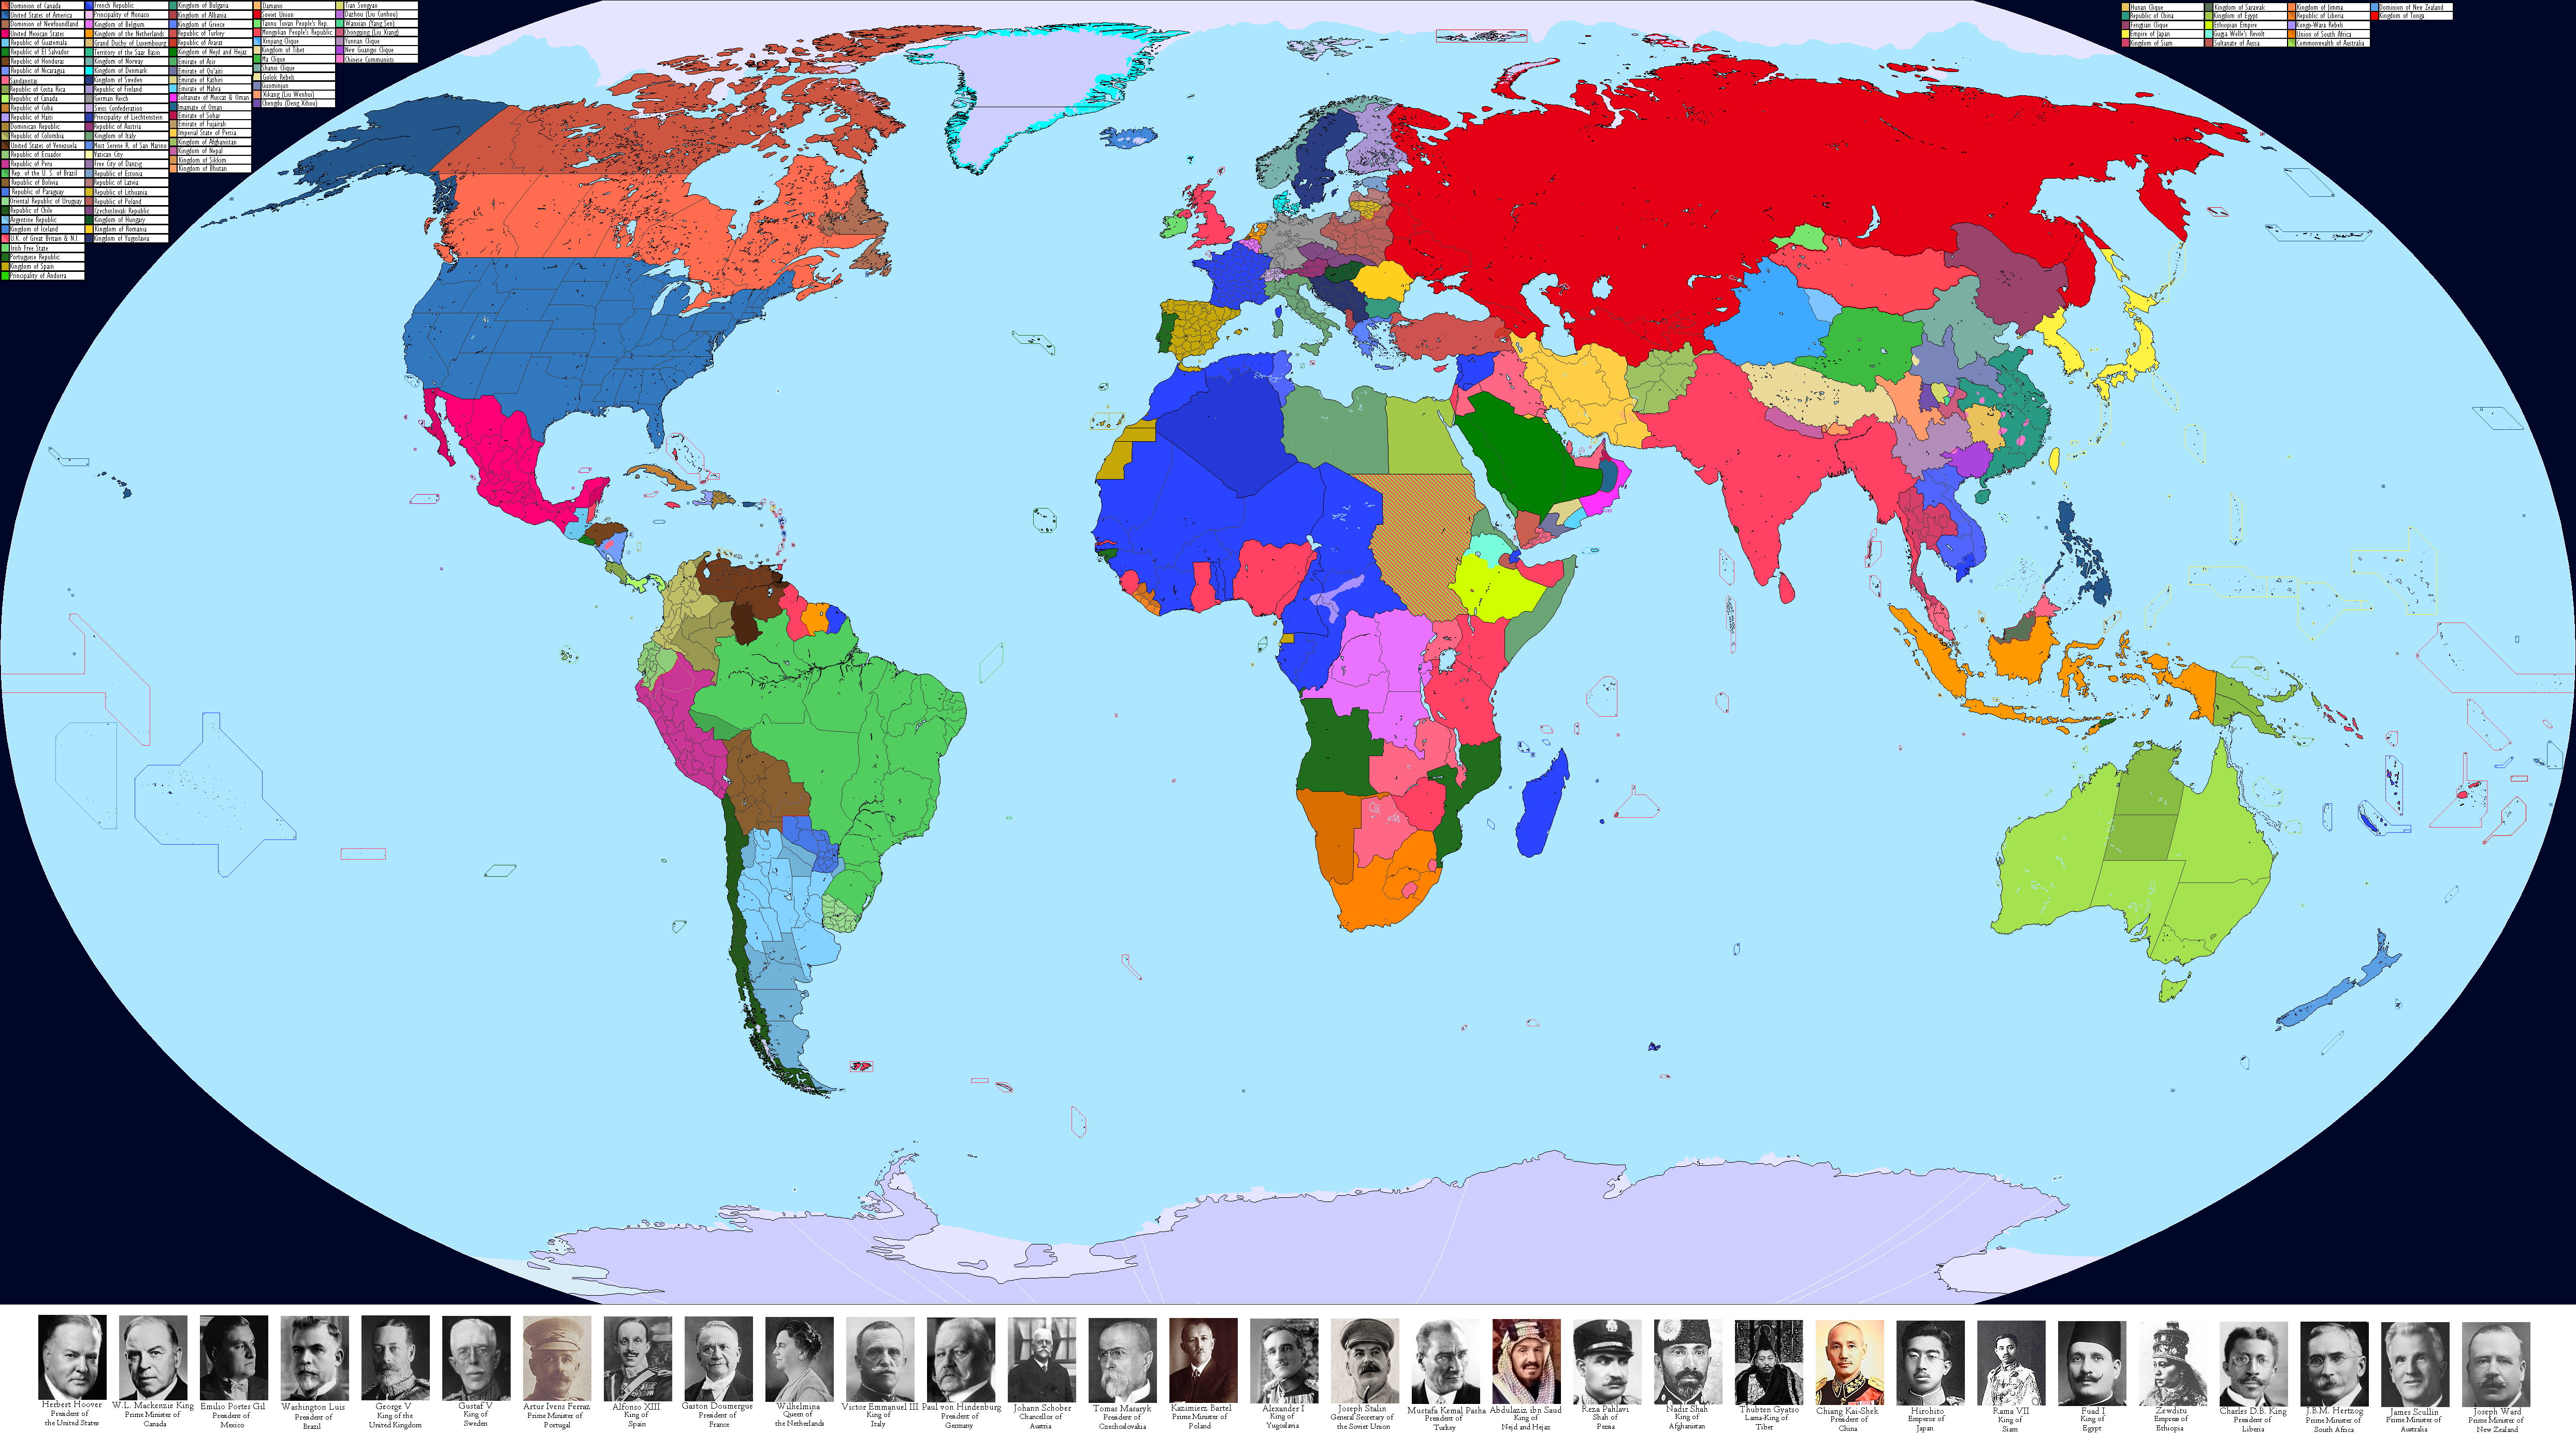 Map Of Spain 1930.1930 World Map By Crazy Boris On Deviantart